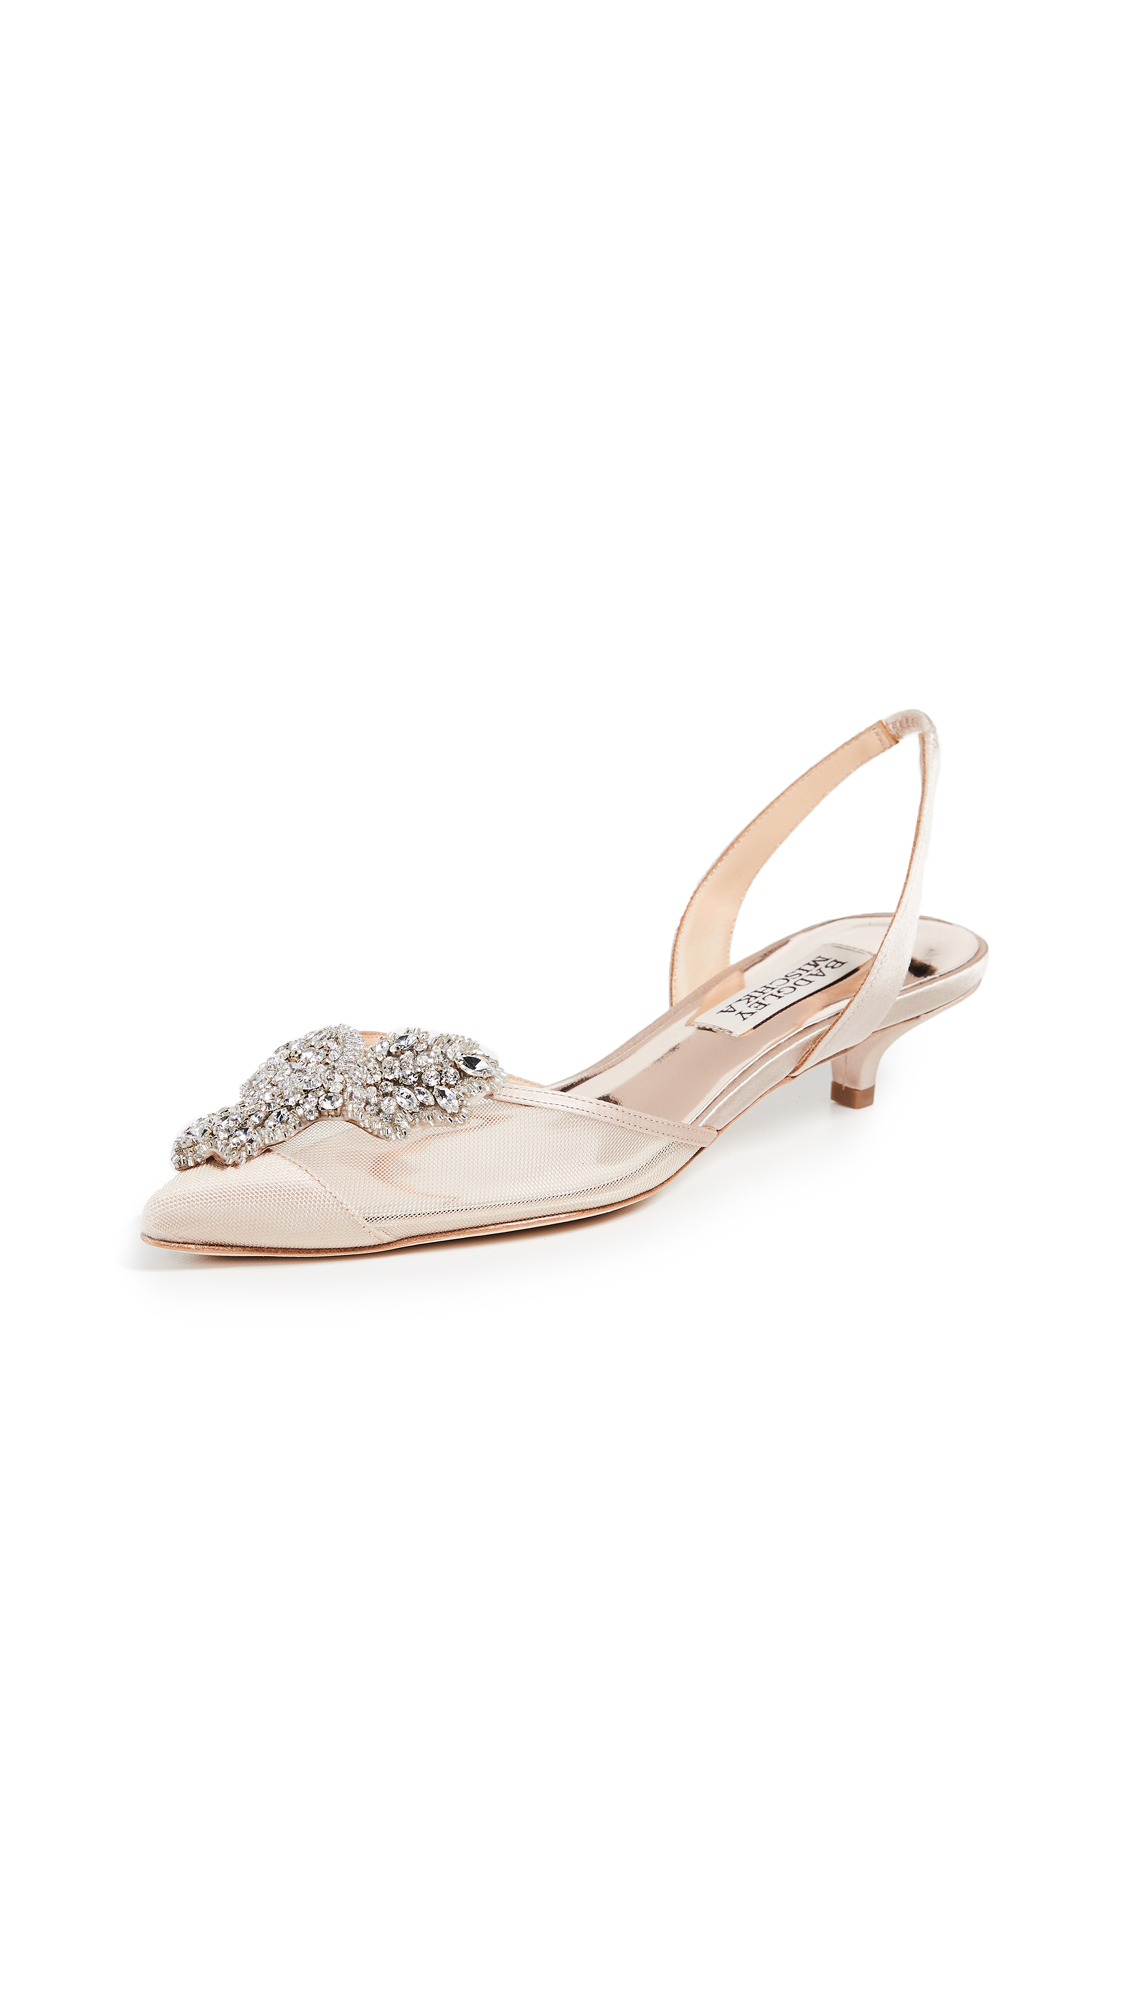 Badgley Mischka Vera Pointed Toe Slingback Pumps